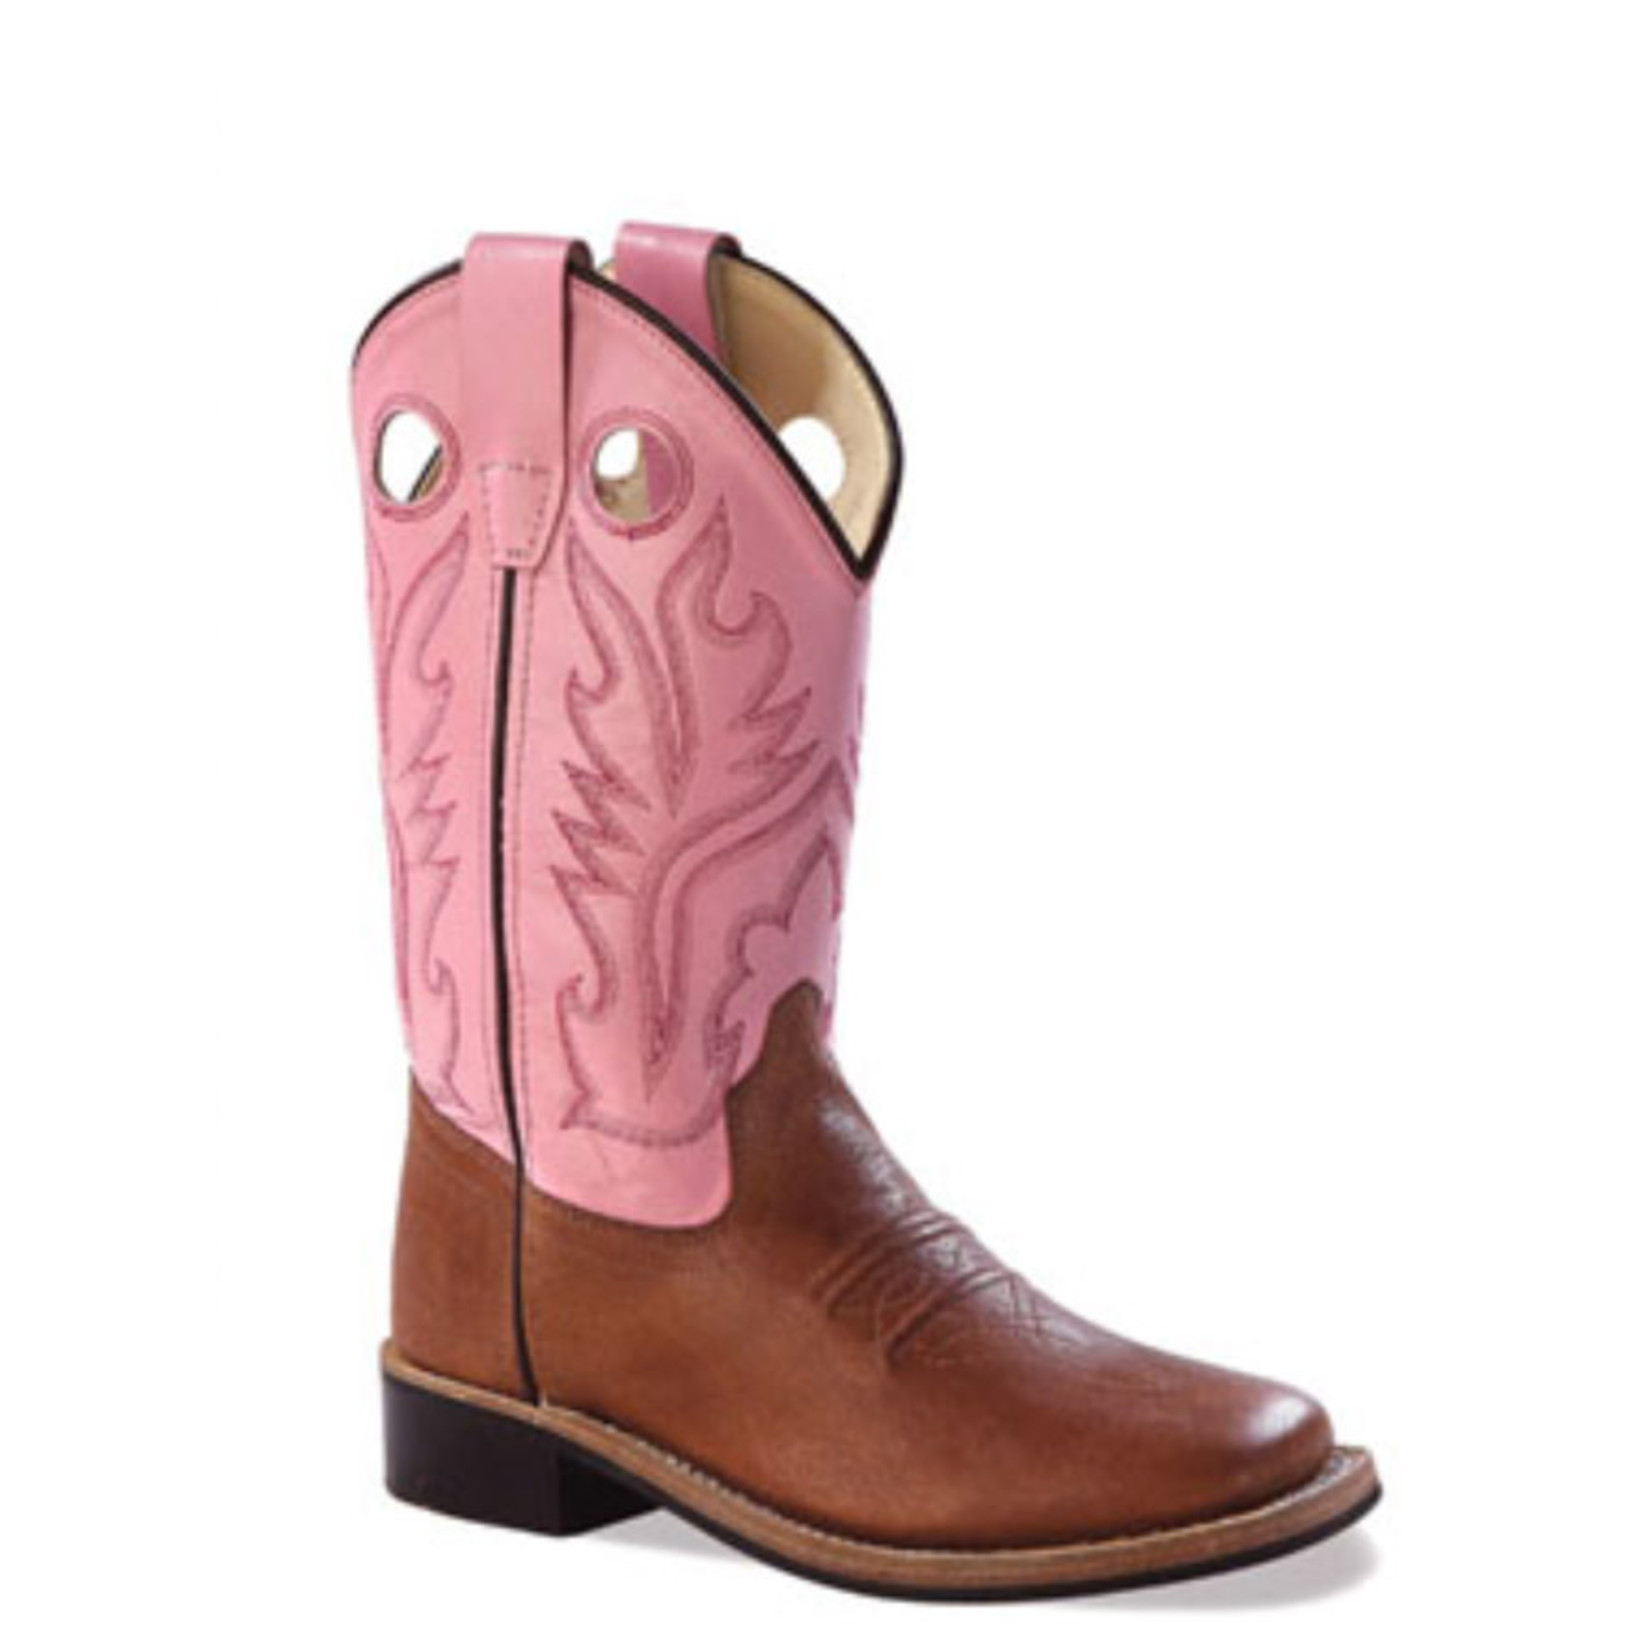 Old west Old West Children/Youth Pink and Brown Square Toe Western Boot BSC1839